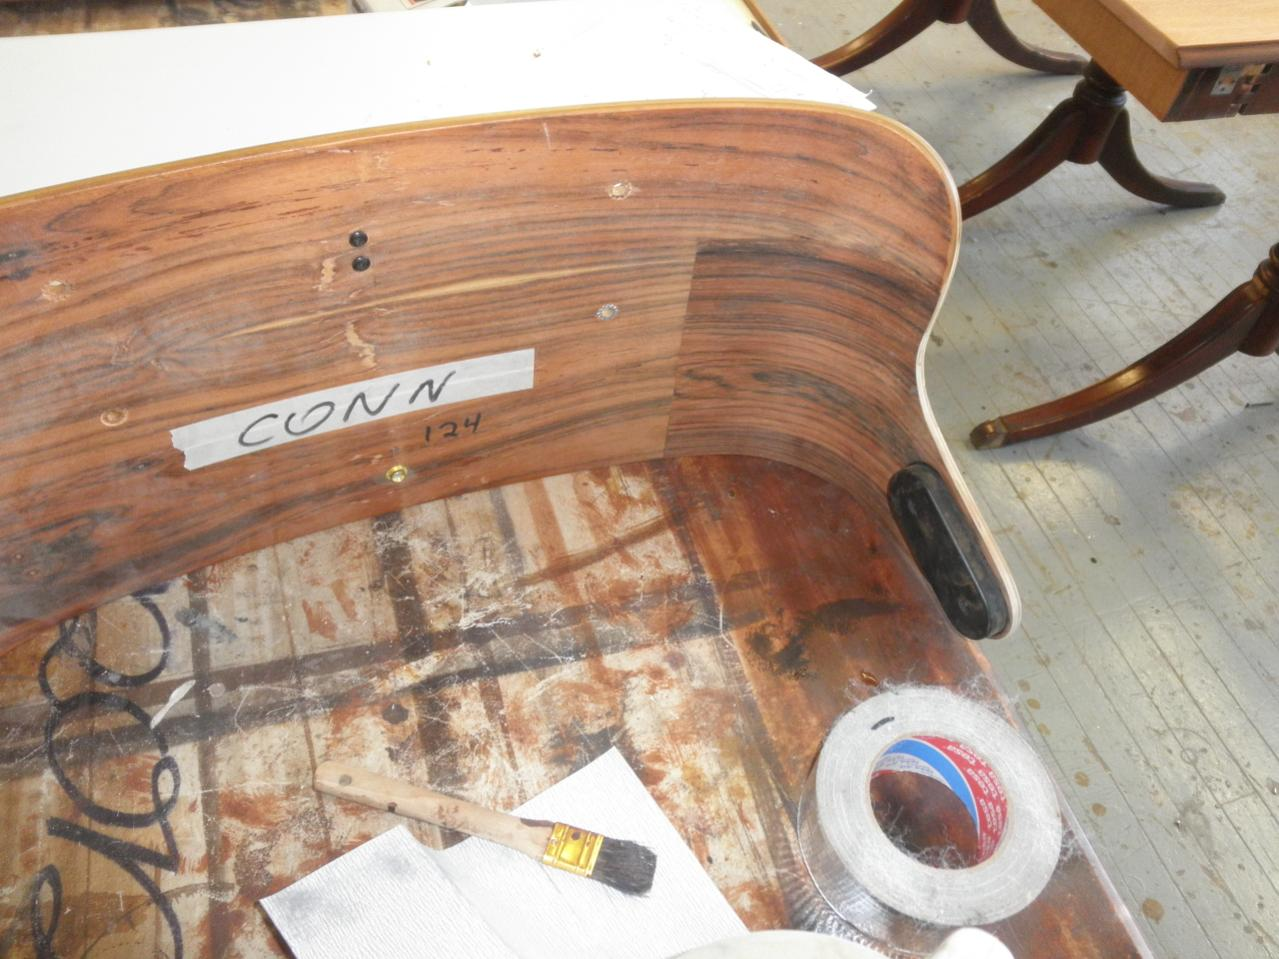 ... Inside Of The Lounge Has Rosewood Inlay As Well, Not Carefully Matched  Or Touched Up